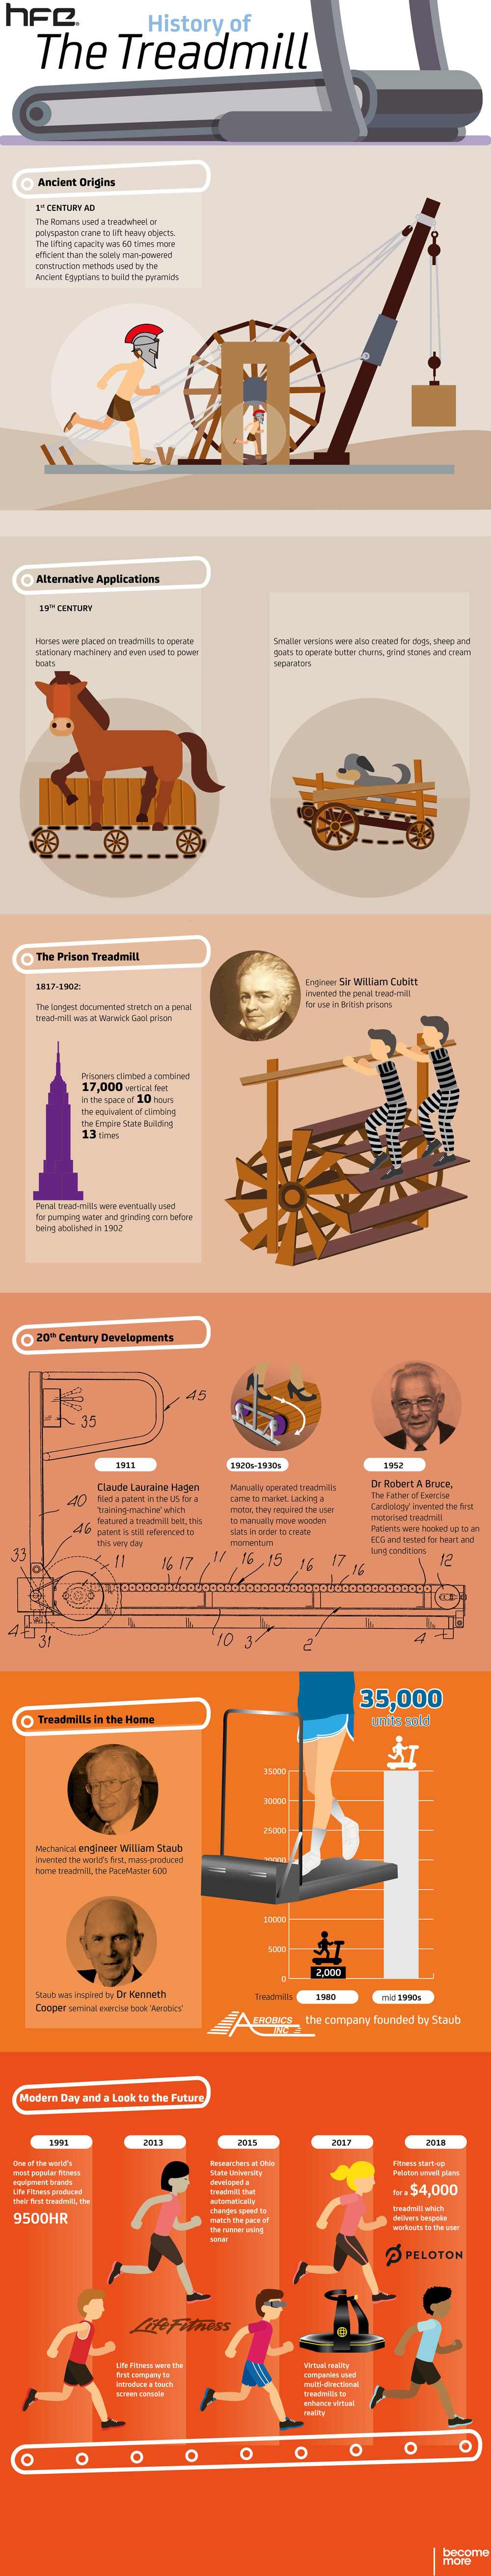 The Fascinating Past of Your Standard Treadmill - Infographic